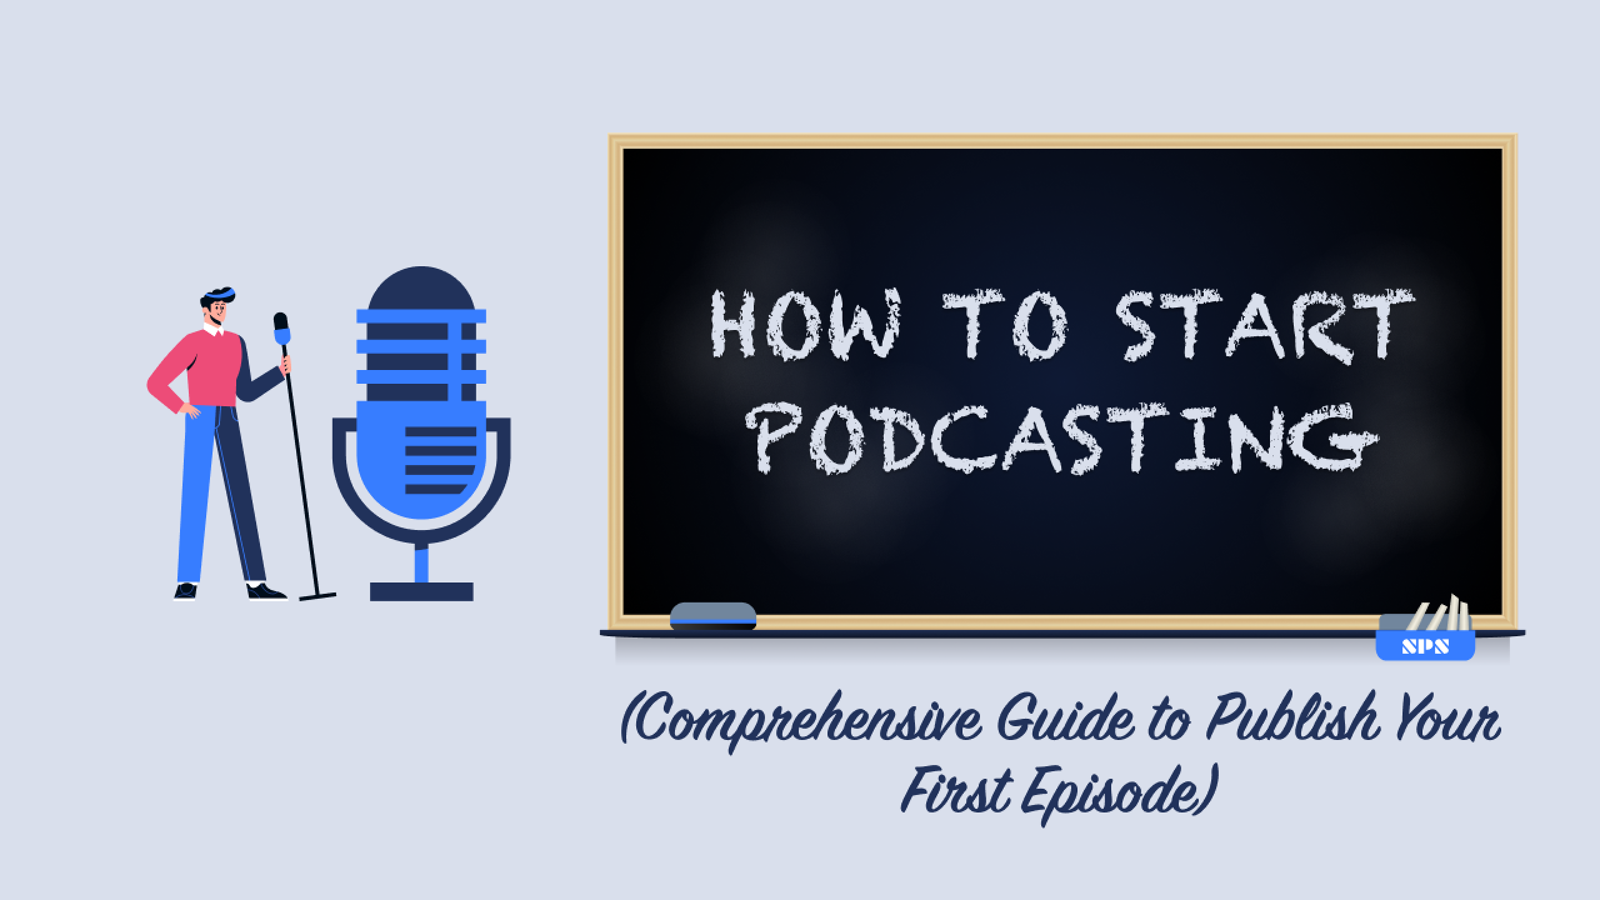 How to Start Podcasting in 2021 (Comprehensive Guide to Publish Your First Episode)